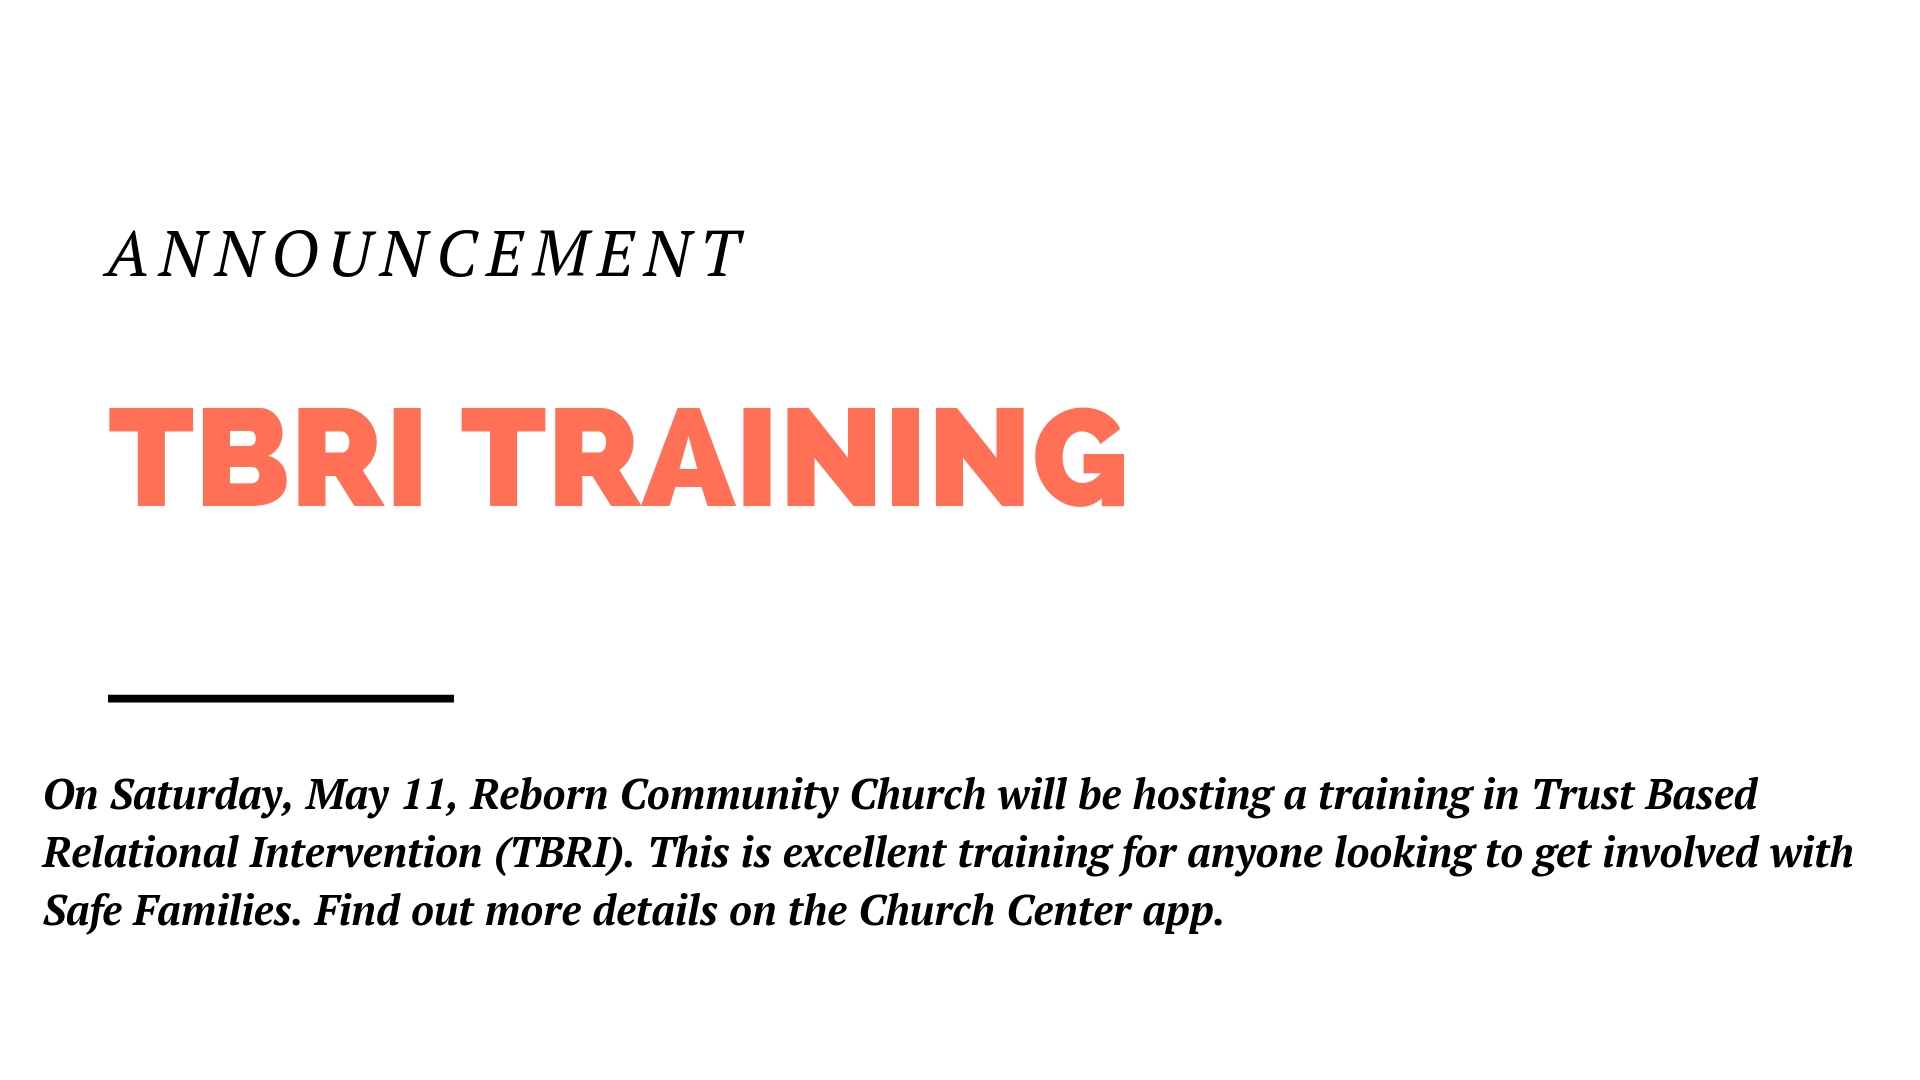 On Saturday, May 11, Reborn Community Church will be hosting a training in Trust Based Relational Intervention (TBRI). This is excellent training for anyone looking to get involved with Safe Families. And we'll have the director of Safe Families joining us during lunch to answer questions. Find out more details on the Church Center app.